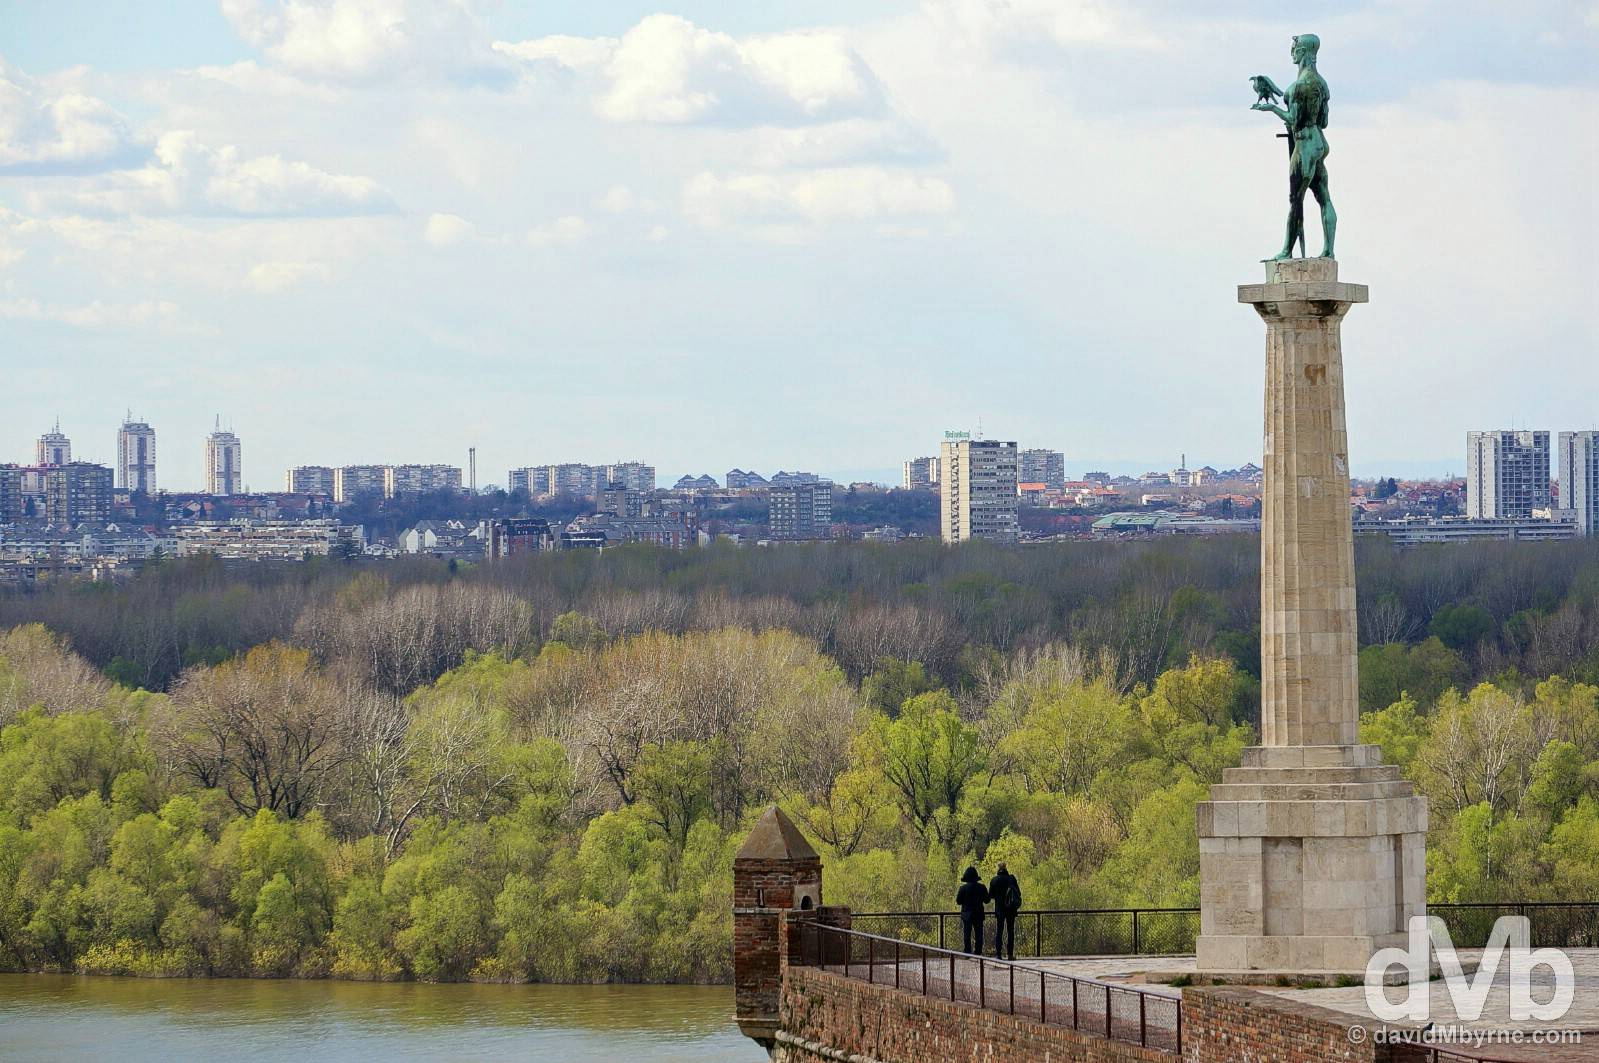 The Victor Monument of the Kalemegdam Citadel overlooking the Danube River in Belgrade, Serbia. April 3, 2015.